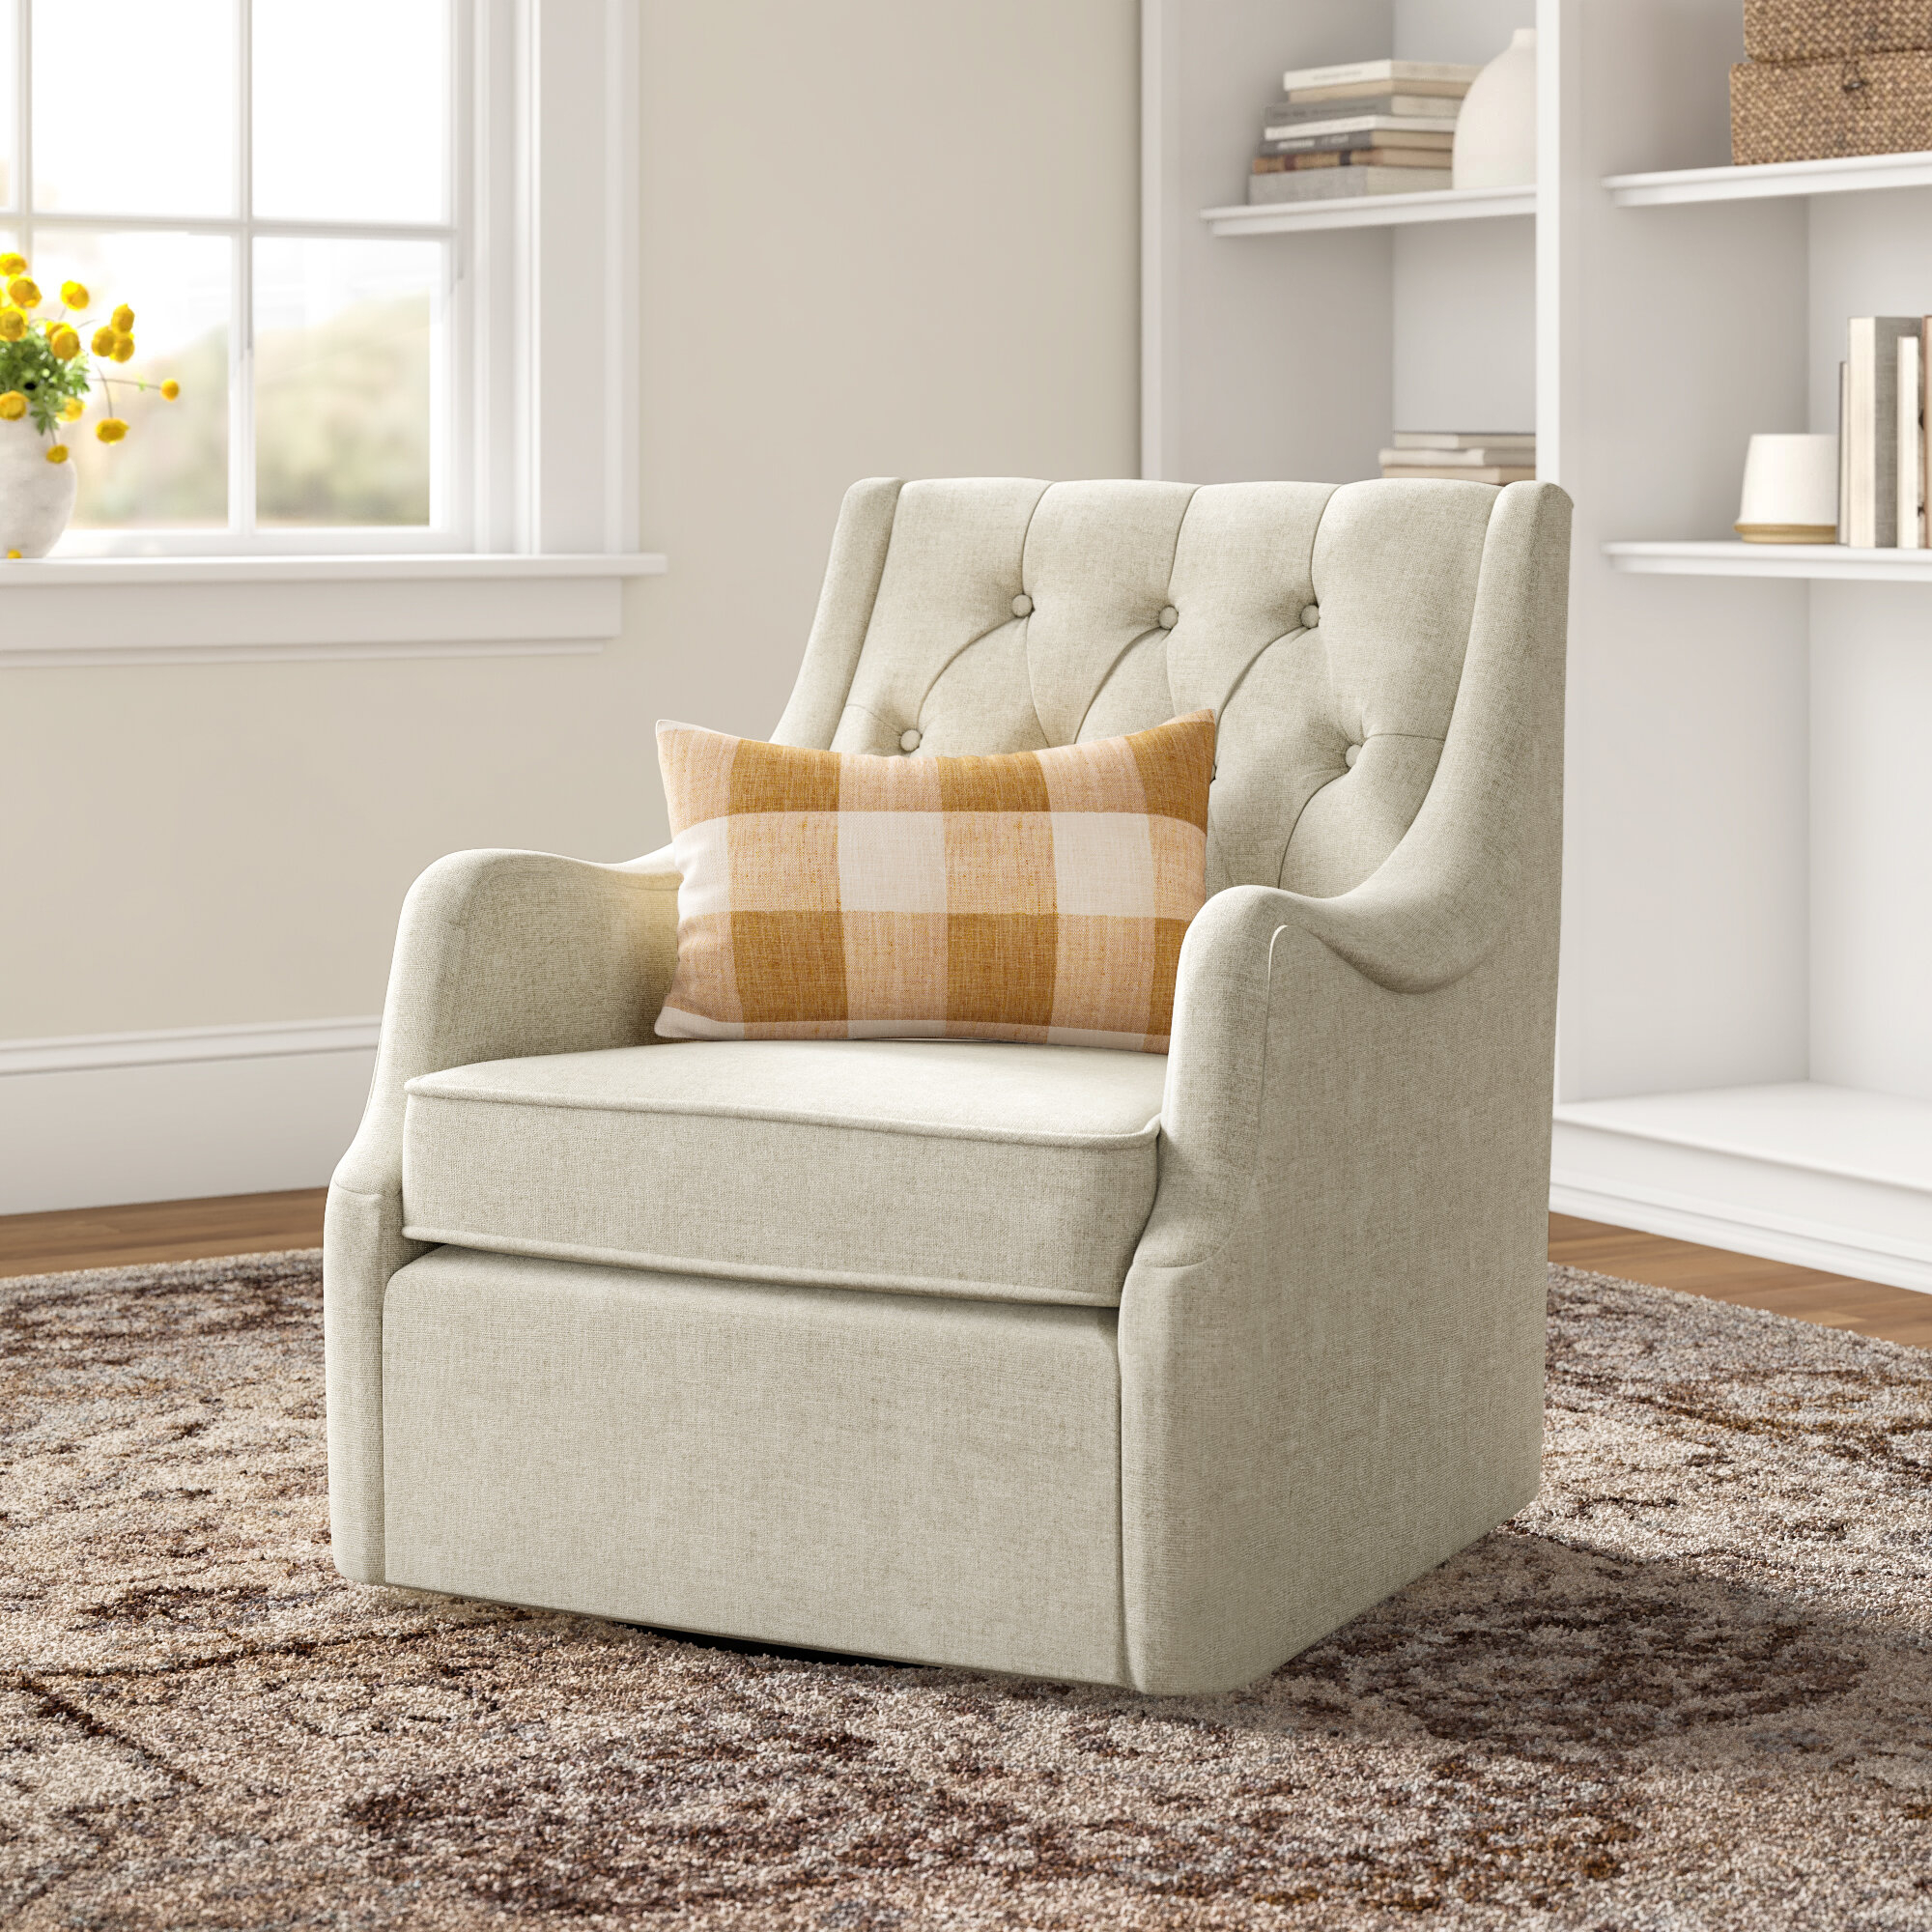 Fabric Swivel Accent Chairs You'Ll Love In 2021 | Wayfair Within Zalina Swivel Armchairs (View 11 of 15)